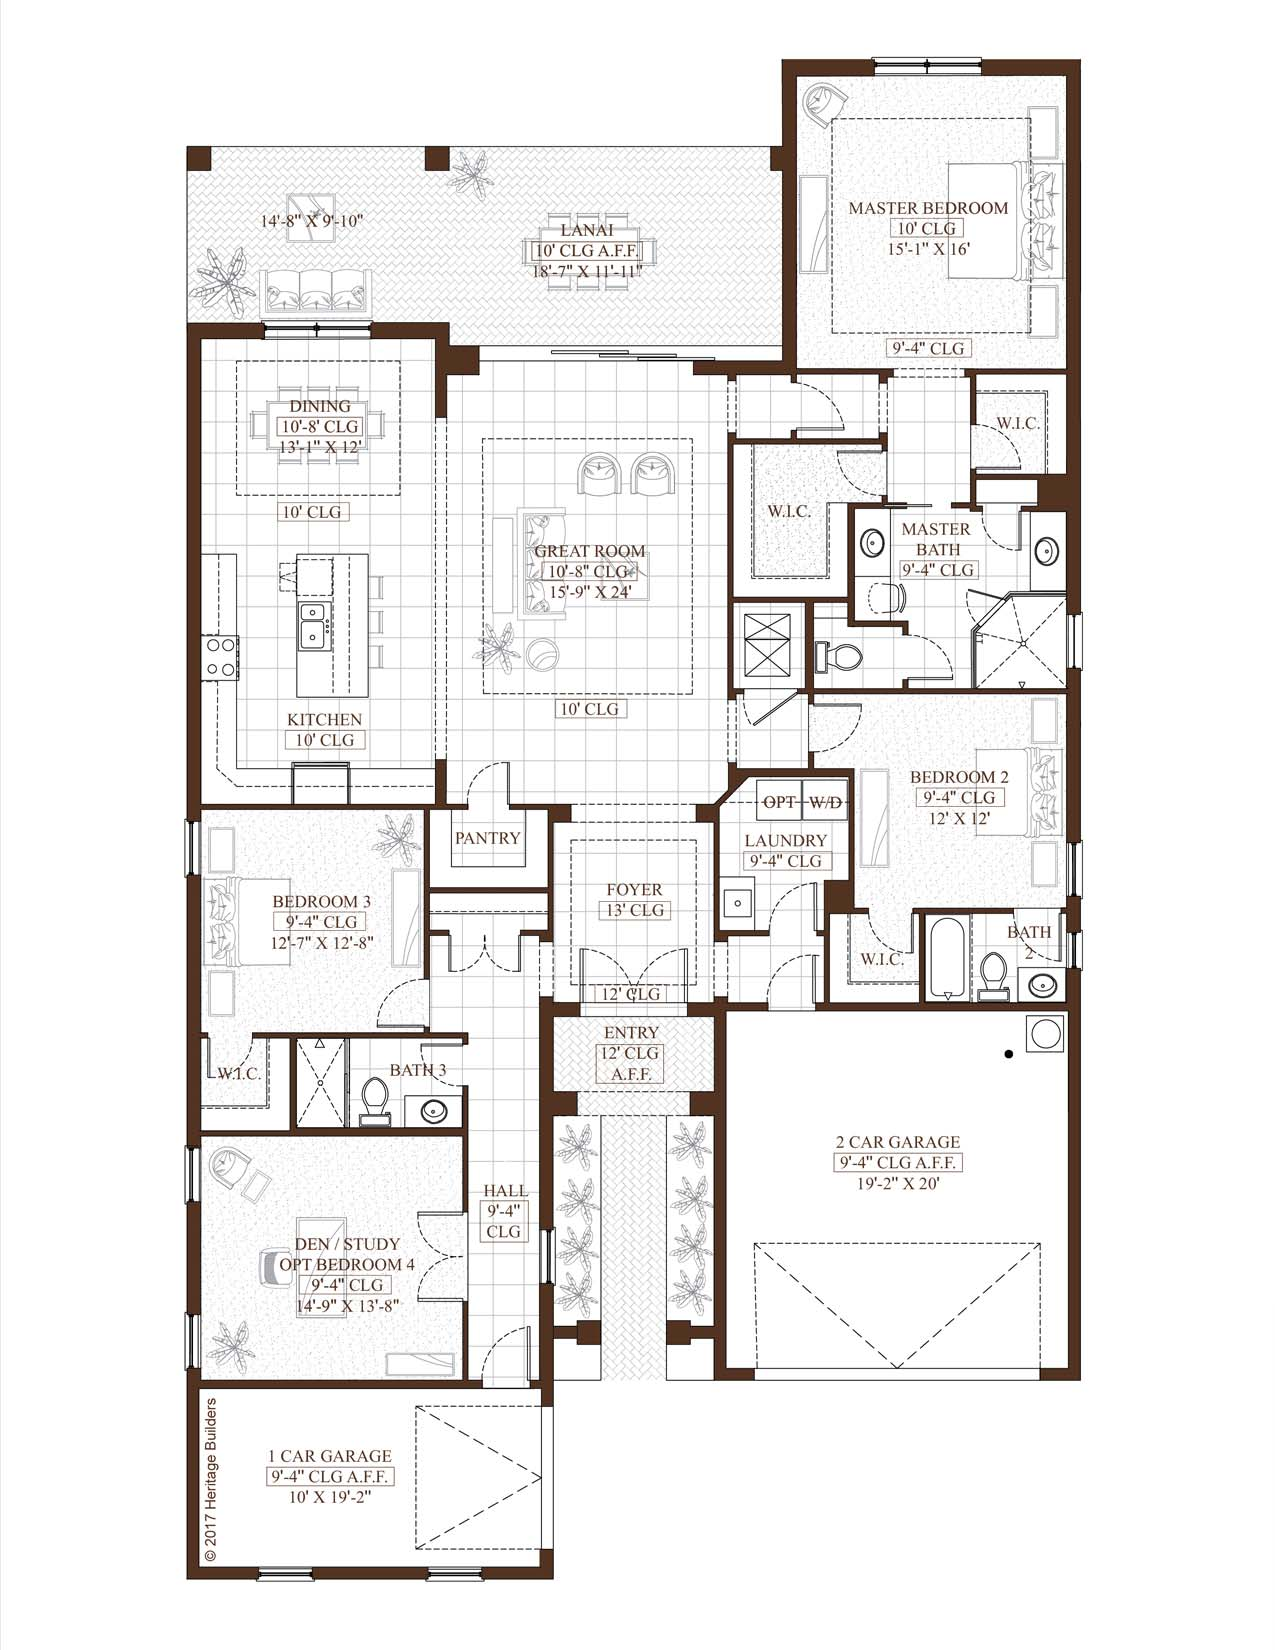 Magnolia Floor Plan Only.jpg